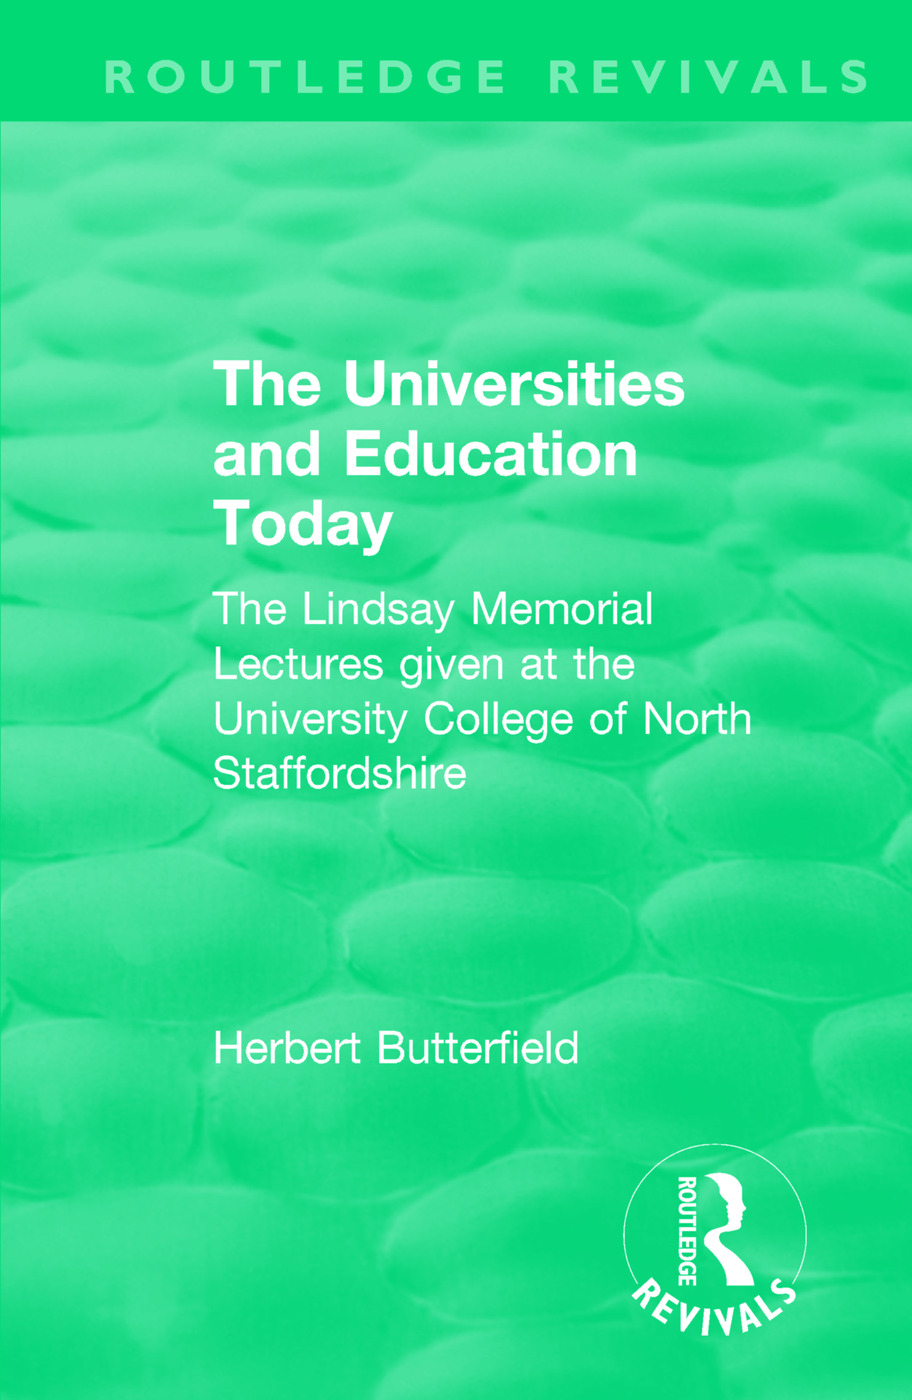 Routledge Revivals: The Universities and Education Today (1962): The Lindsay Memorial Lectures given at the University College of North Staffordshire, 1st Edition (Paperback) book cover